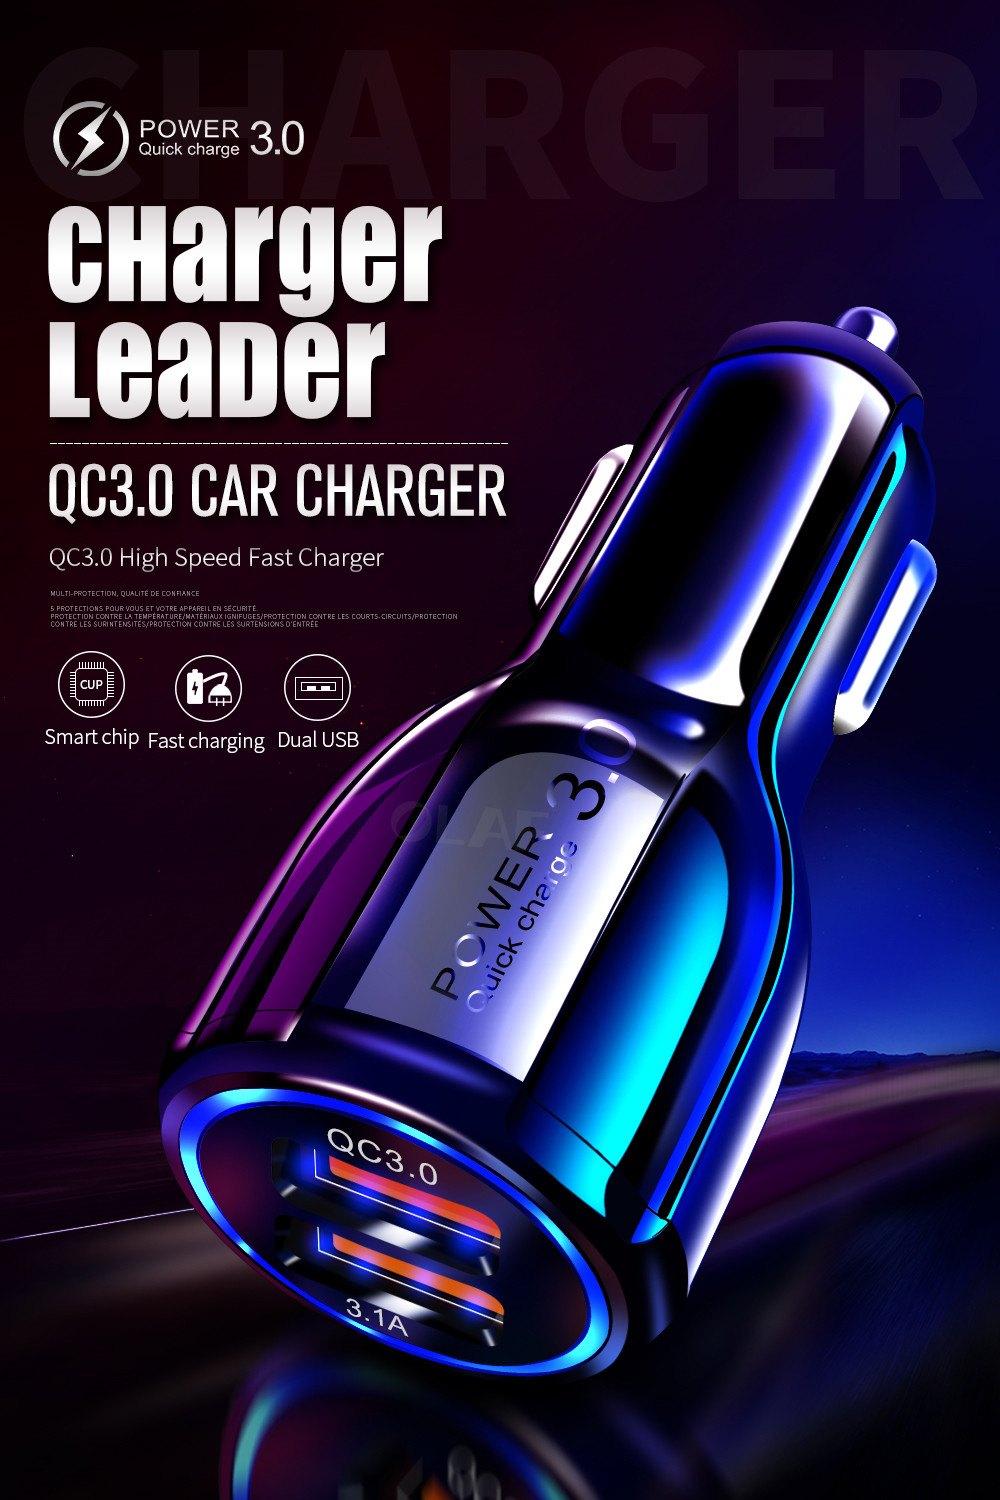 Car USB Charger Quick Charge 3.0 2.0 Mobile Phone Charger 2 Port USB Fast Charger for iPhone Samsung Tablet Car Charger